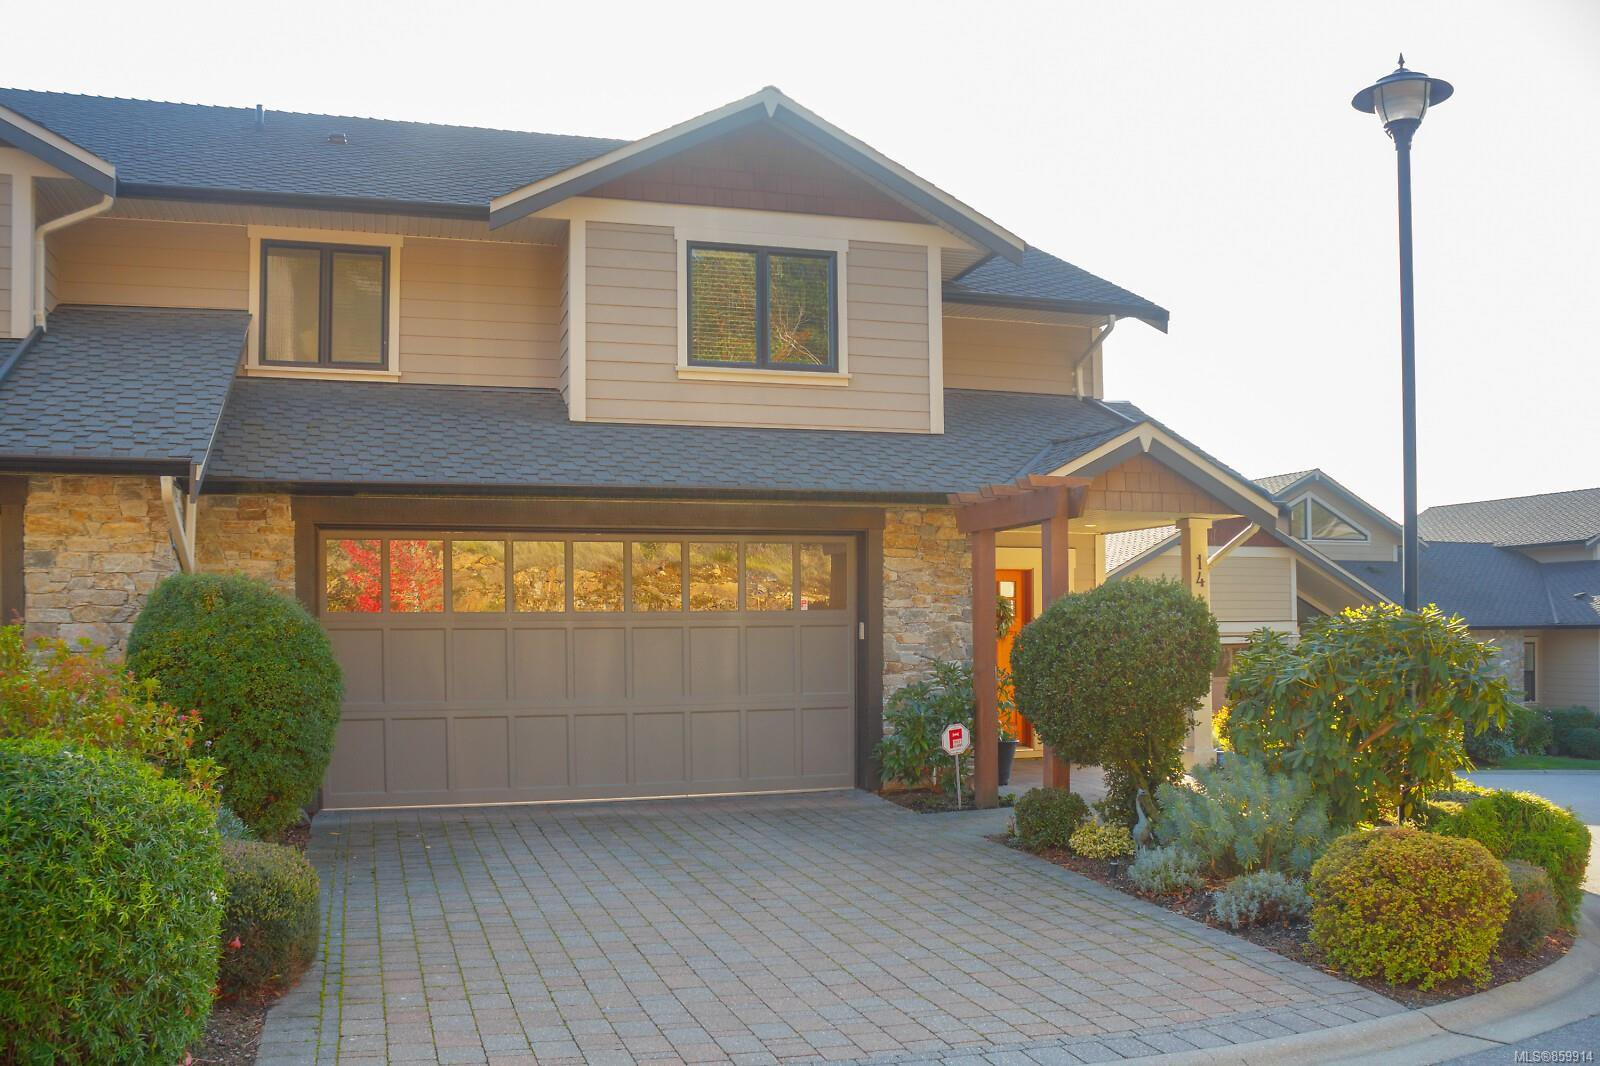 Main Photo: 14 614 Granrose Terr in : Co Latoria Row/Townhouse for sale (Colwood)  : MLS®# 859914